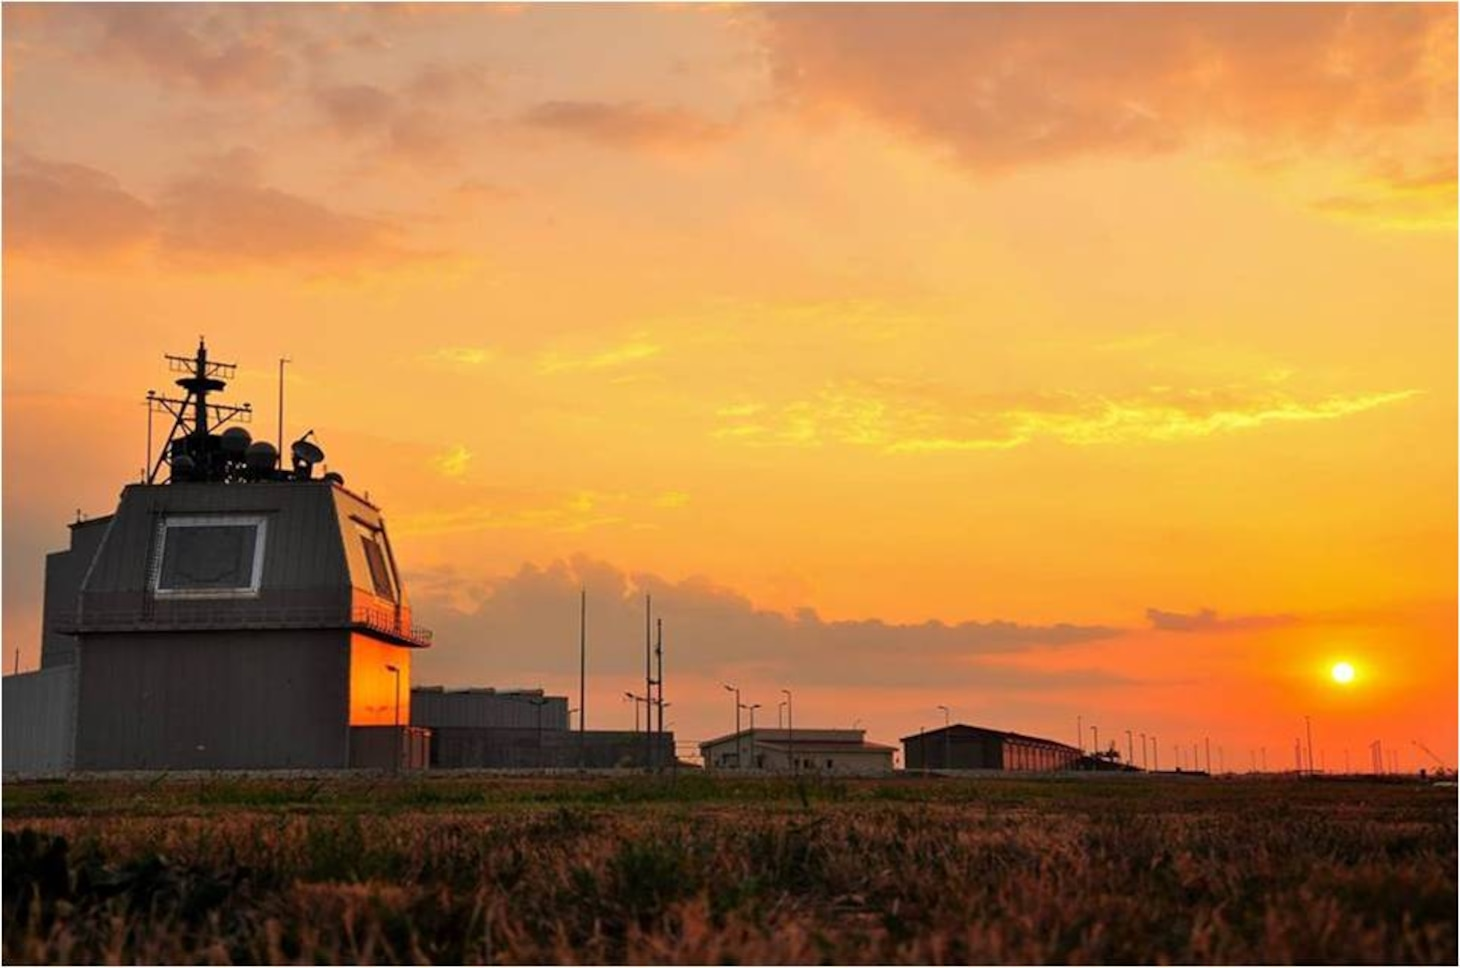 The Aegis Ashore Missile Defense System (AAMDS) located at Naval Support Facility (NSF) Deveselu, Romania, celebrated the fifth anniversary of its shift to NATO Command and Control, as a U.S. contribution of capability to the Alliance, August 19, 2021.